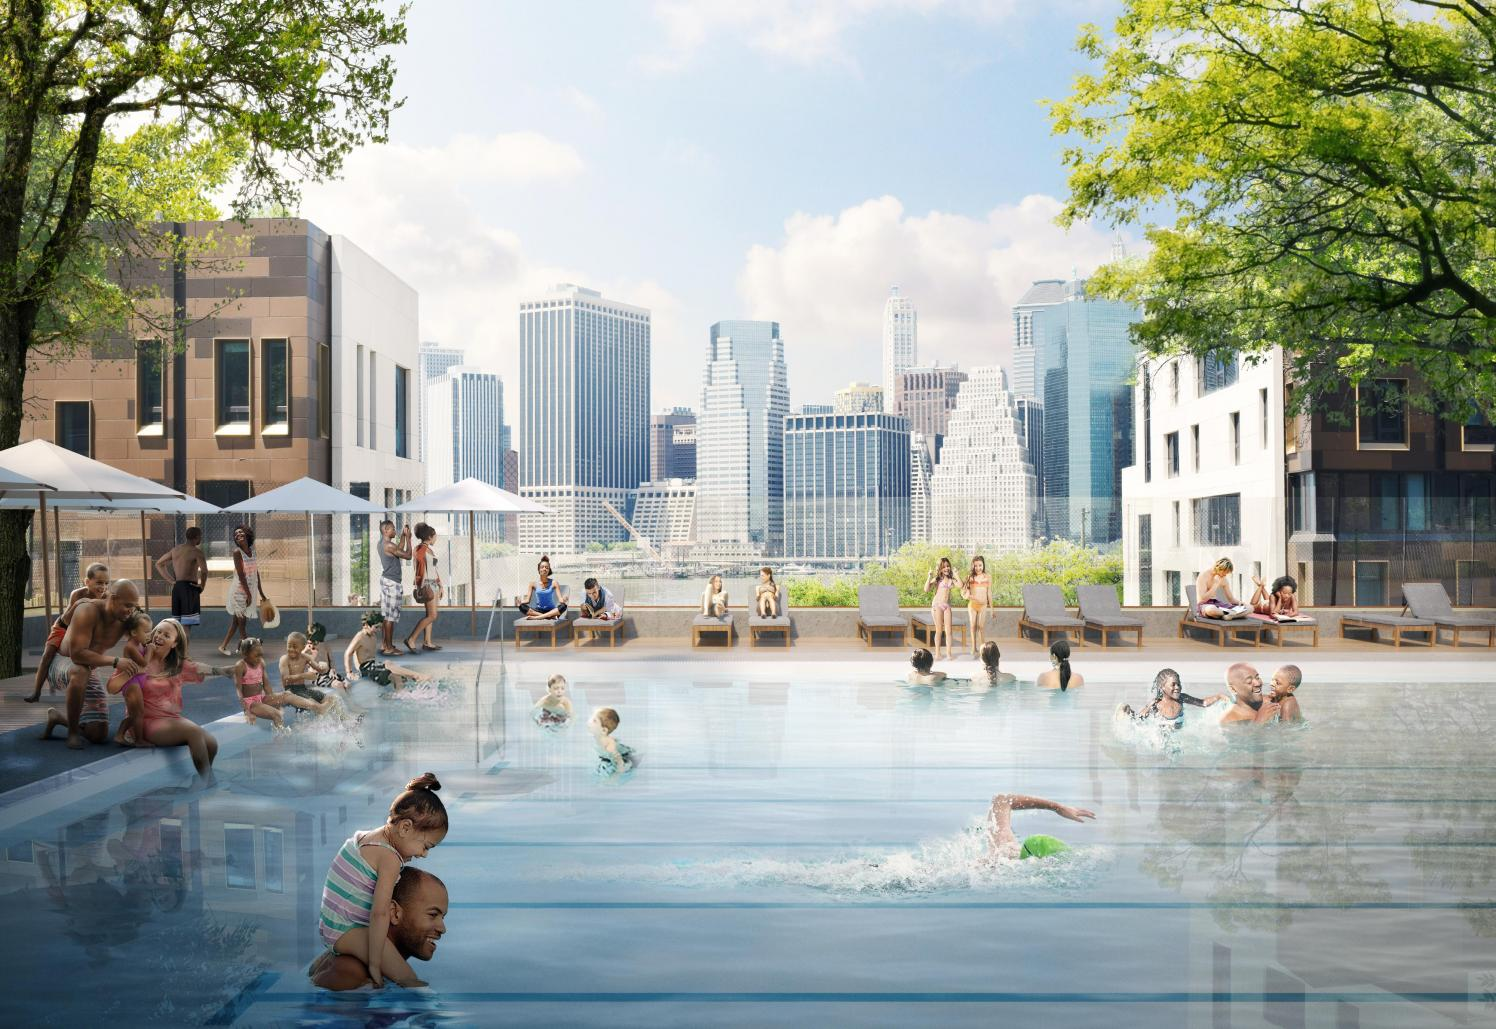 Brooklyn Bridge Park Announces Plans To Build A Permanent